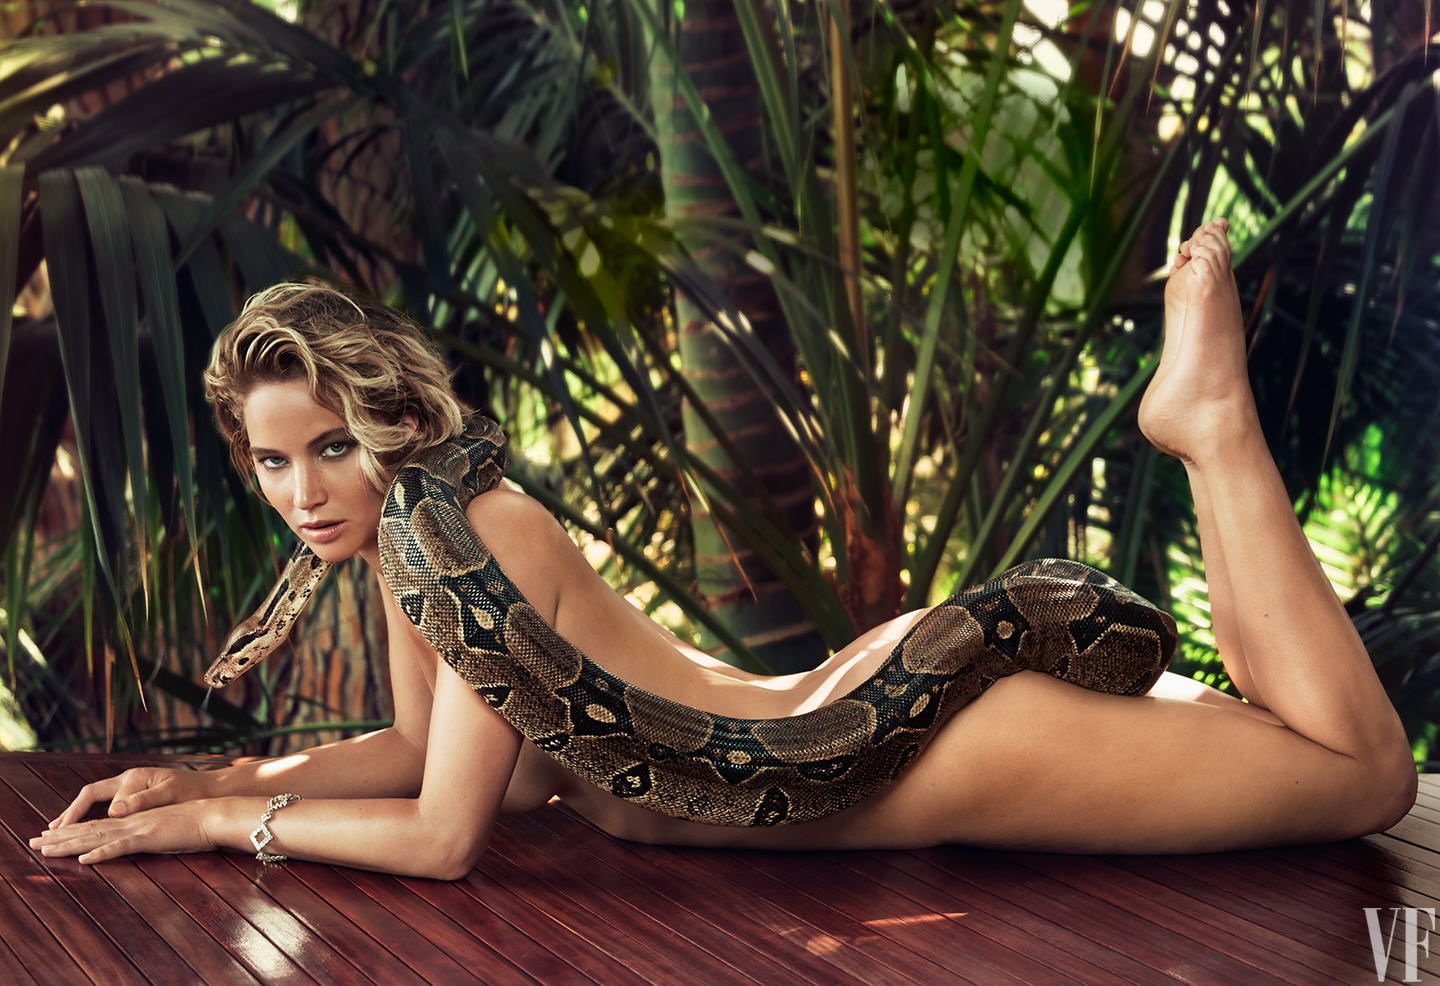 Jennifer Lawrence Snake Jennifer Lawrence Goes Nude Again, This Time With A Snake